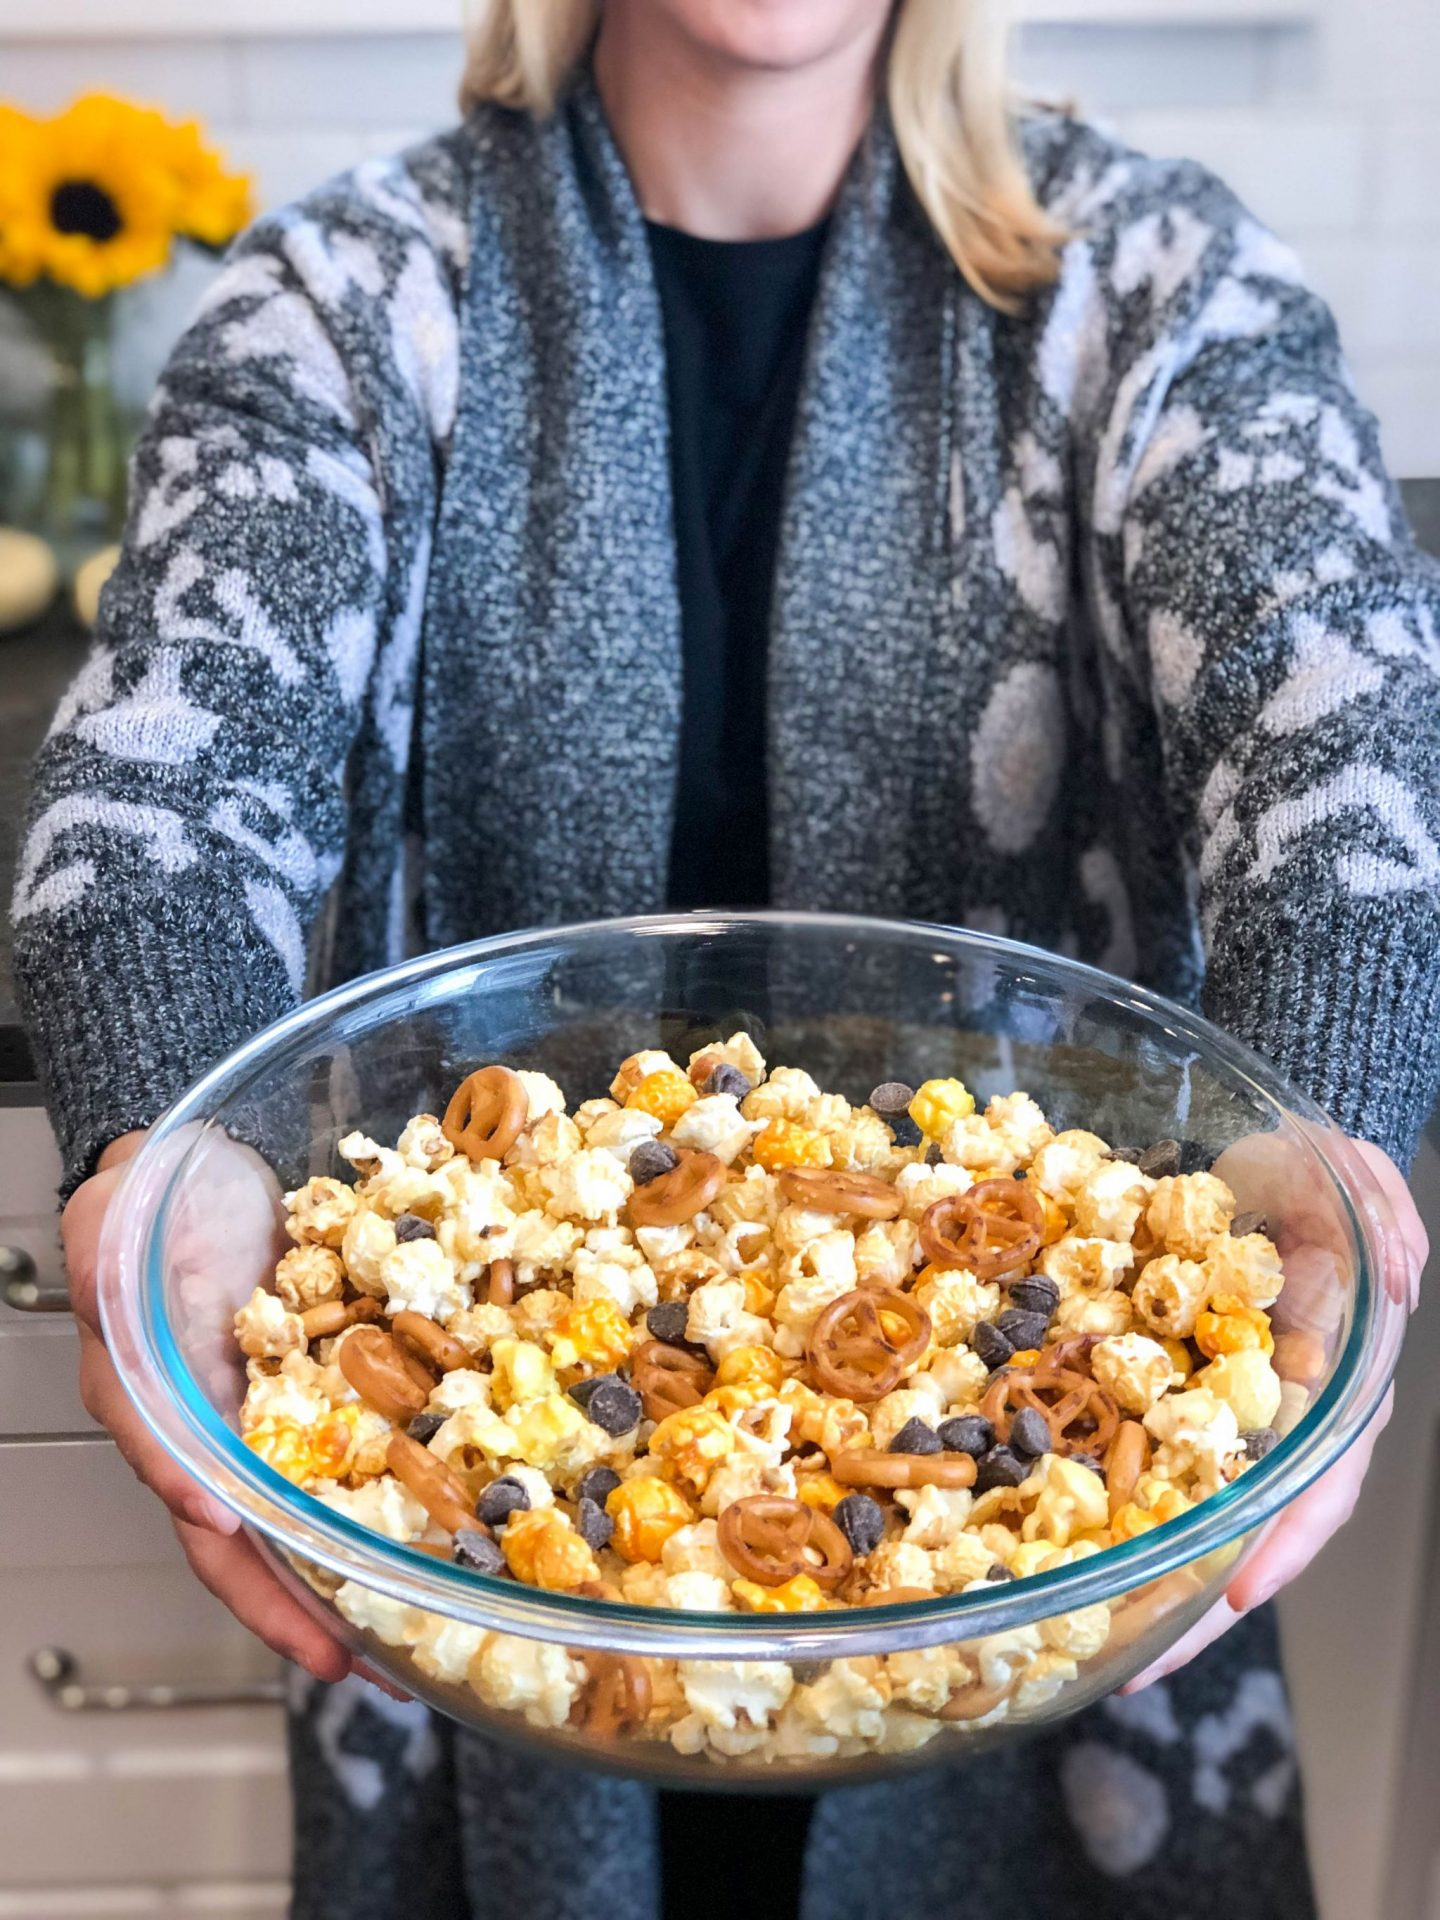 Trader Joe's Halloween Popcorn Mix and Five Not Scary Halloween Movies To Watch